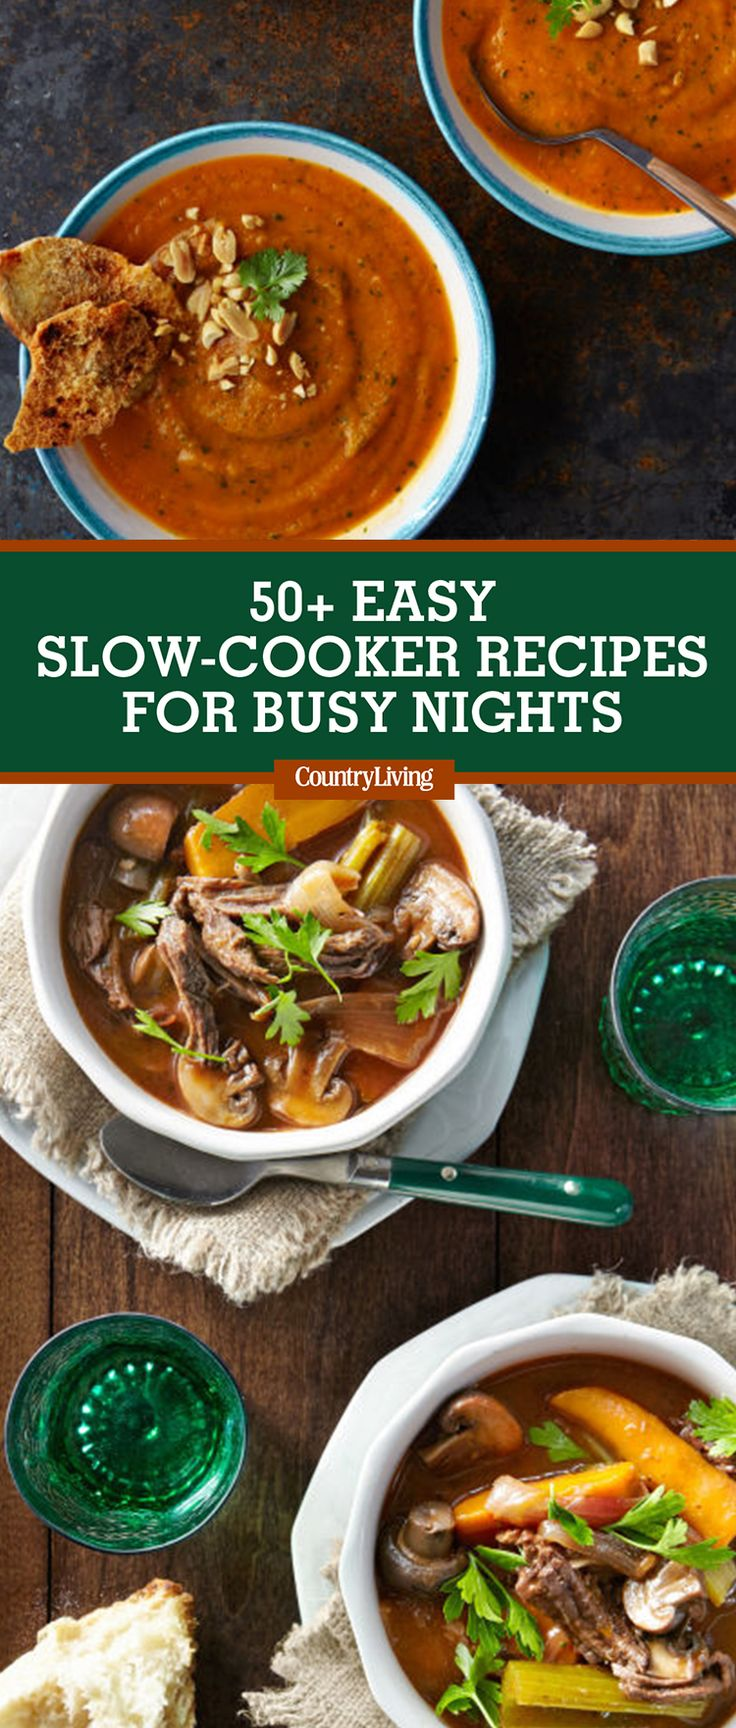 Save these slow-cooker recipes for later by pinning this image, and follow Country Living on Pinterest for more.Tools you'll need: $21, Crock-Pot 7-Quart Stainless Steel, amazon.com